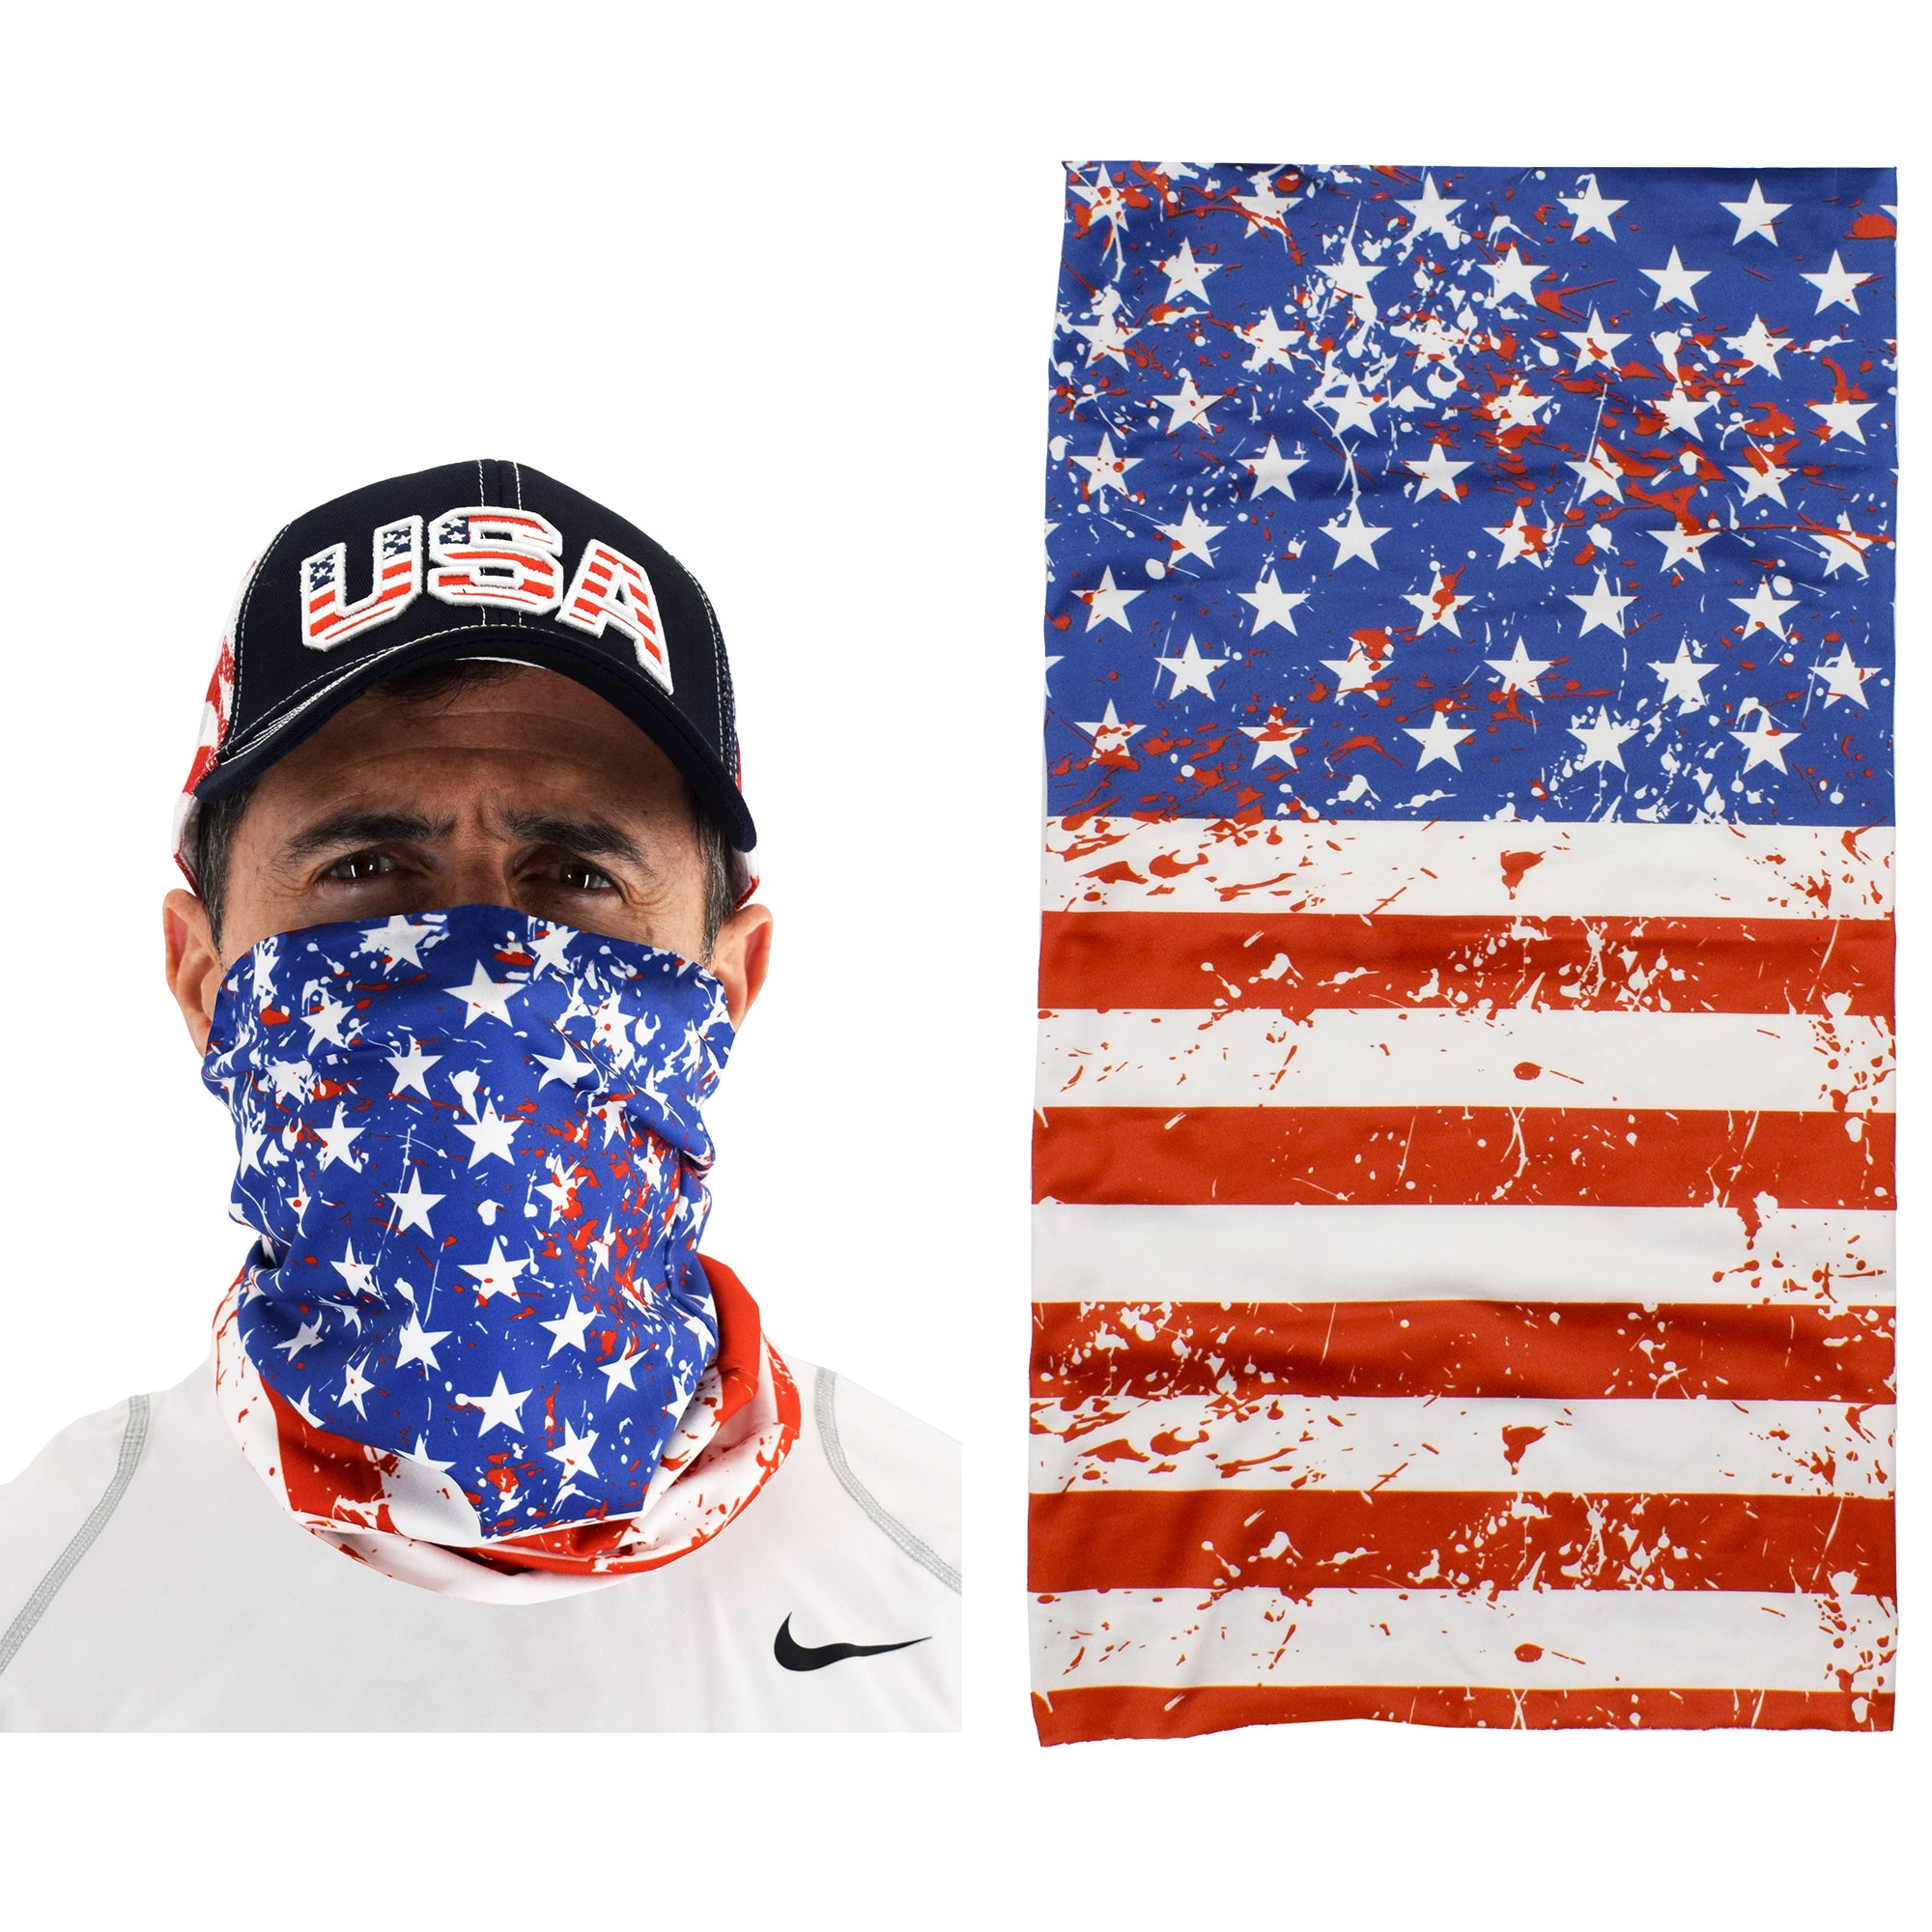 Cloth Gaiter Scarf with American Flag - Multi